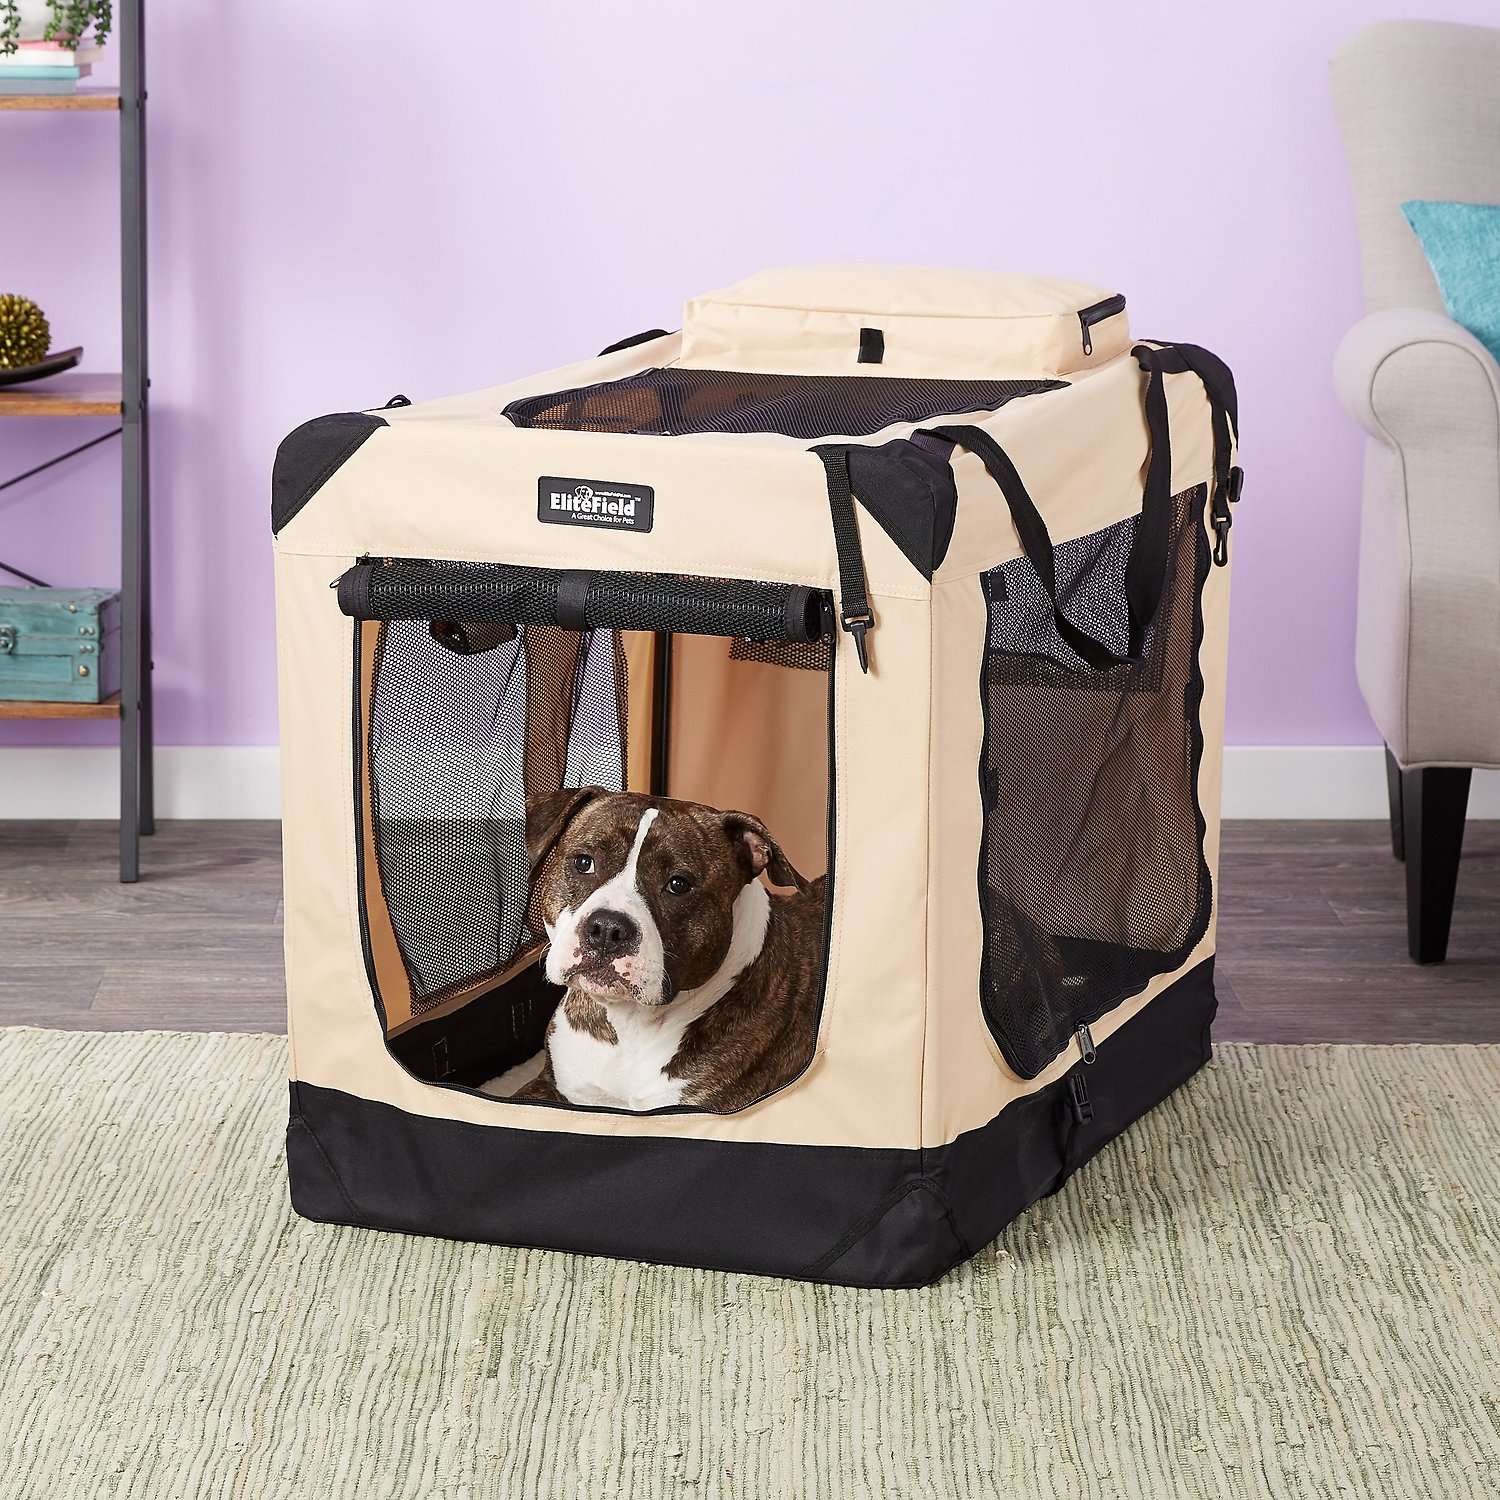 elitefield 3 door folding soft sided dog crate 36 inch With soft sided folding dog crates